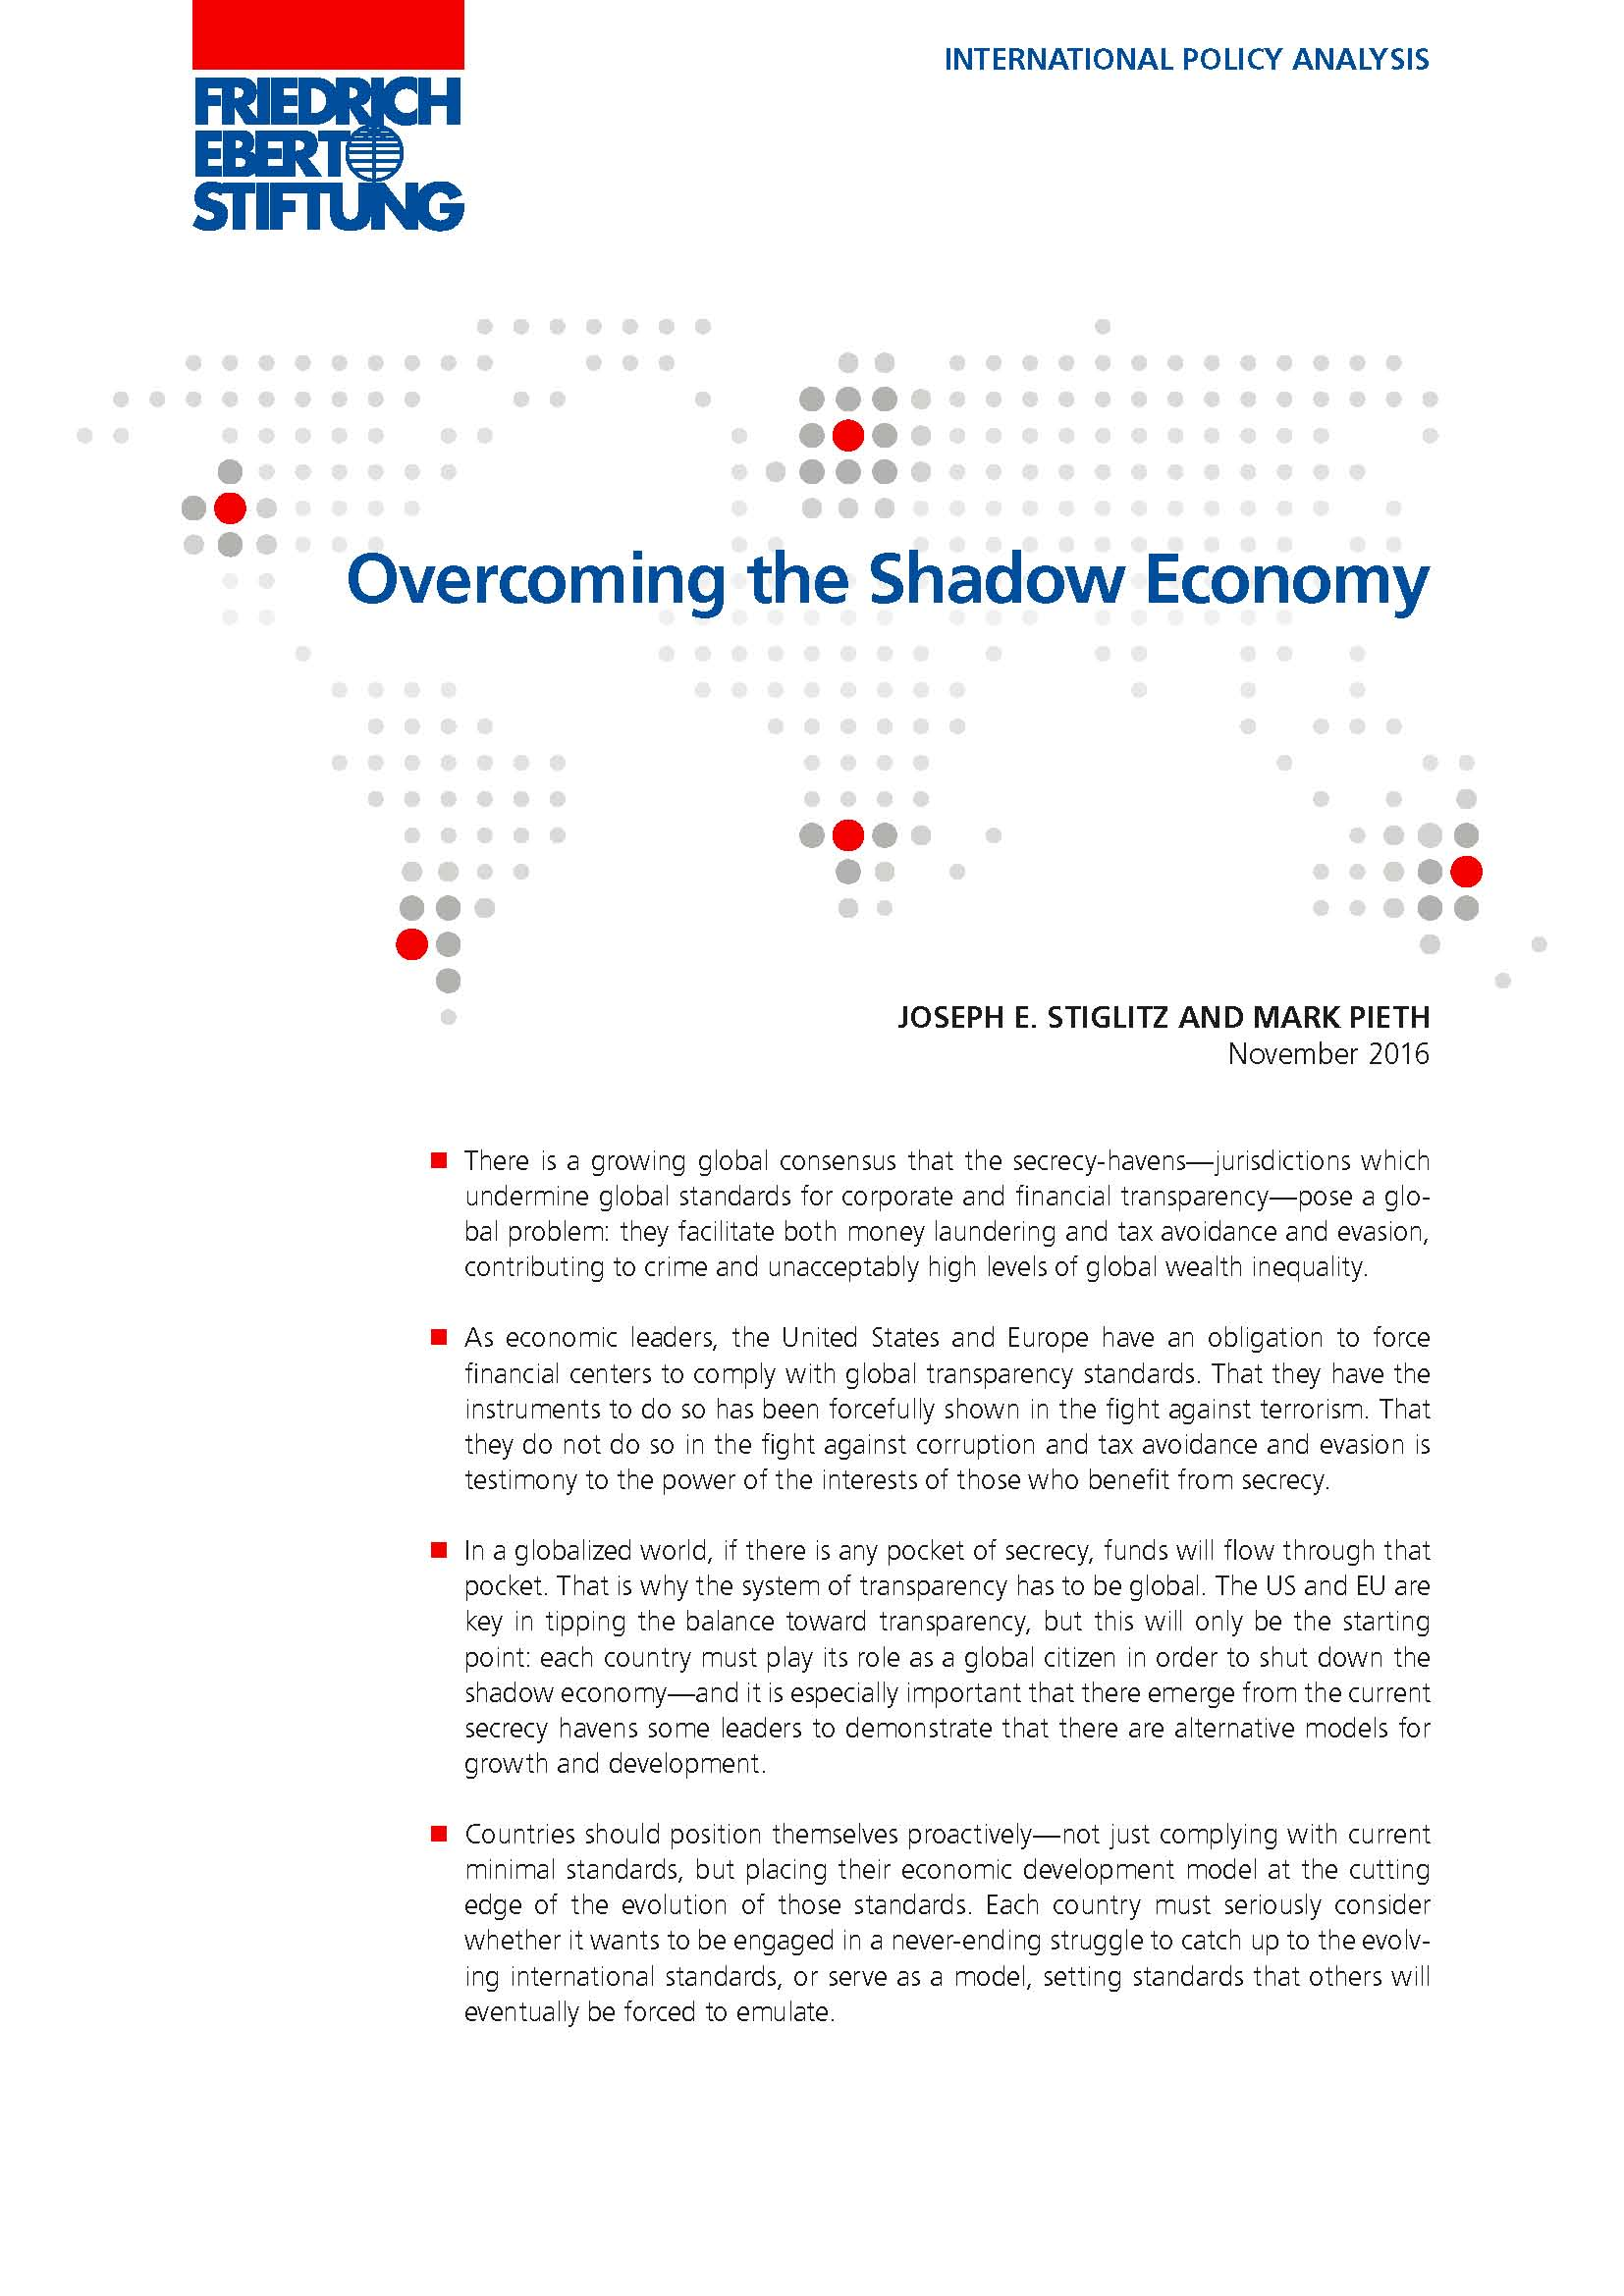 First page of Overcoming the Shadow Economy report